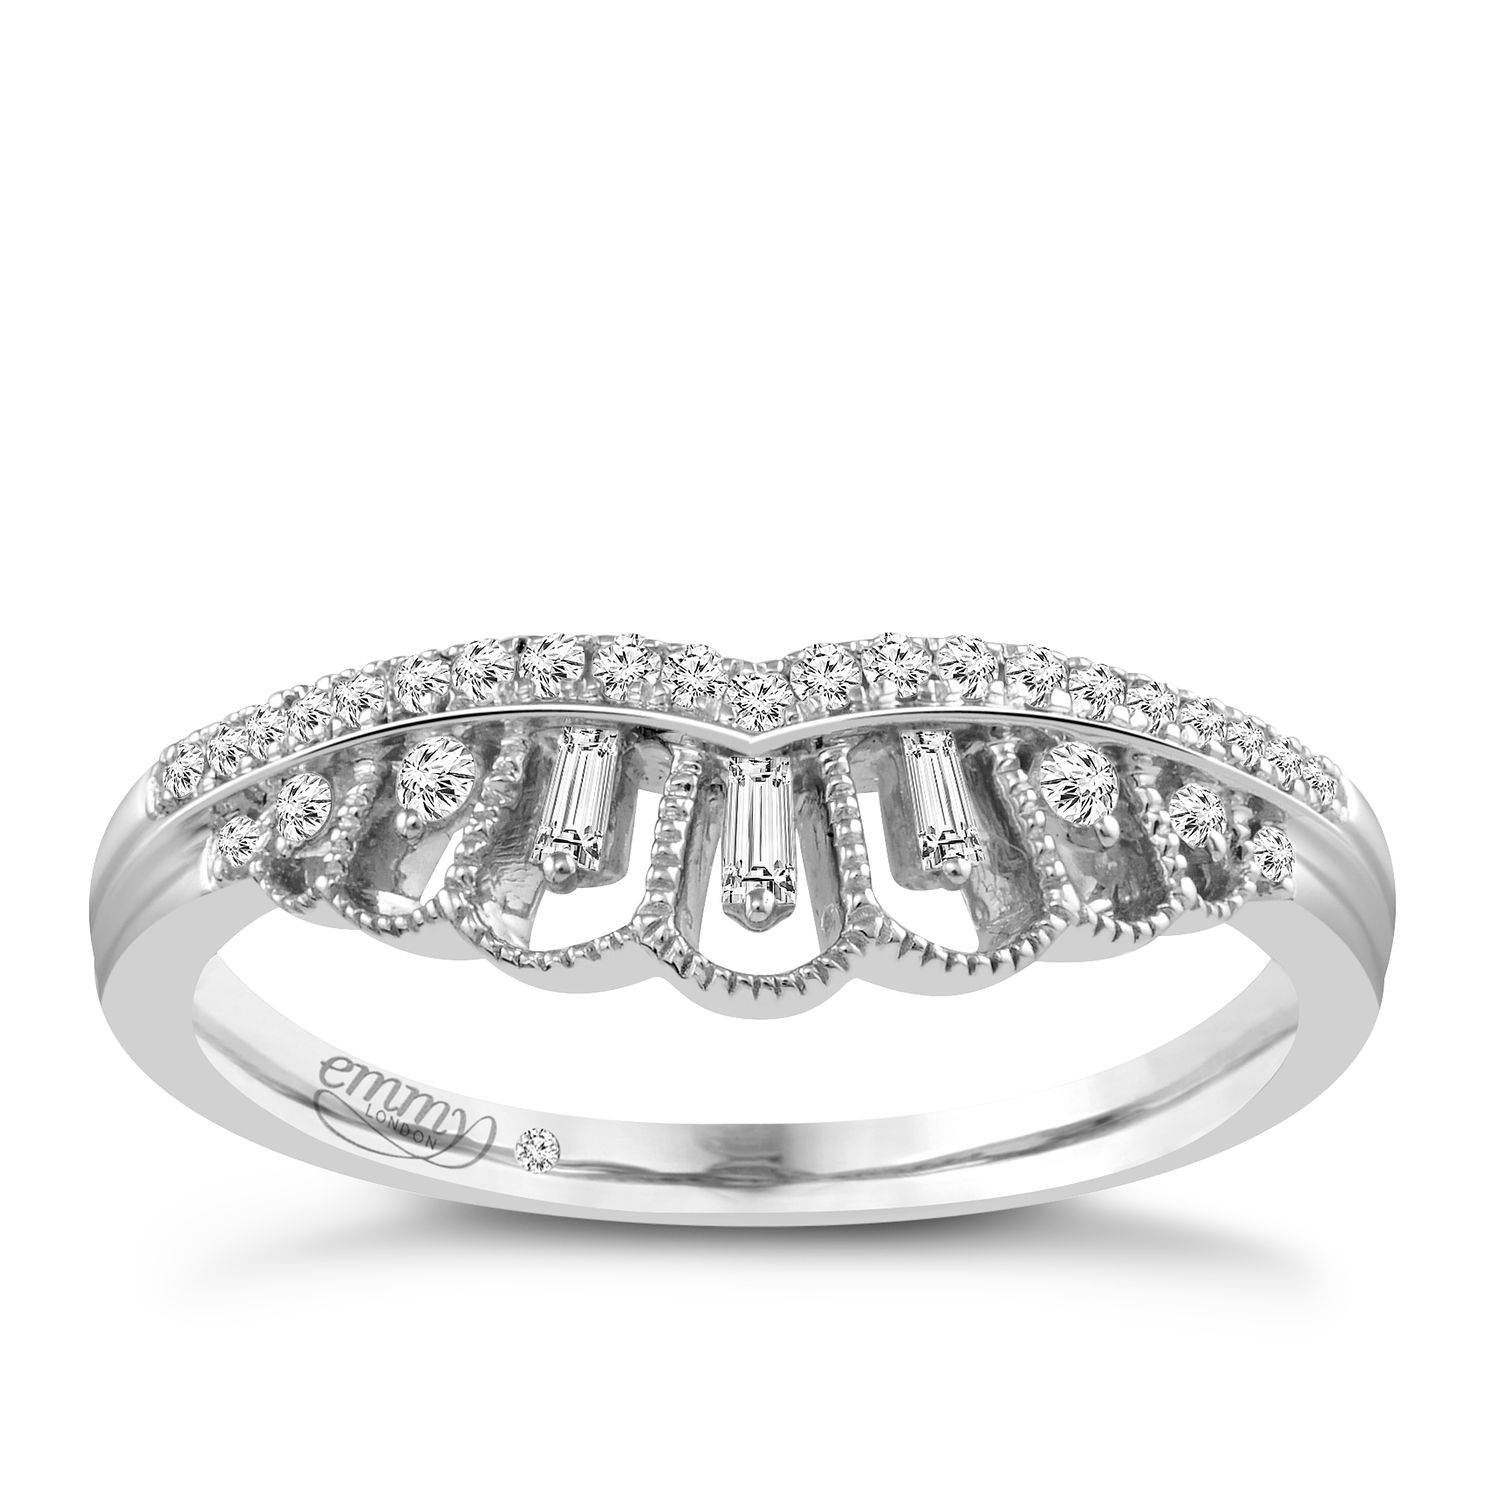 Emmy London Platinum 1/8 Carat Diamond Ring - Product number 4545494